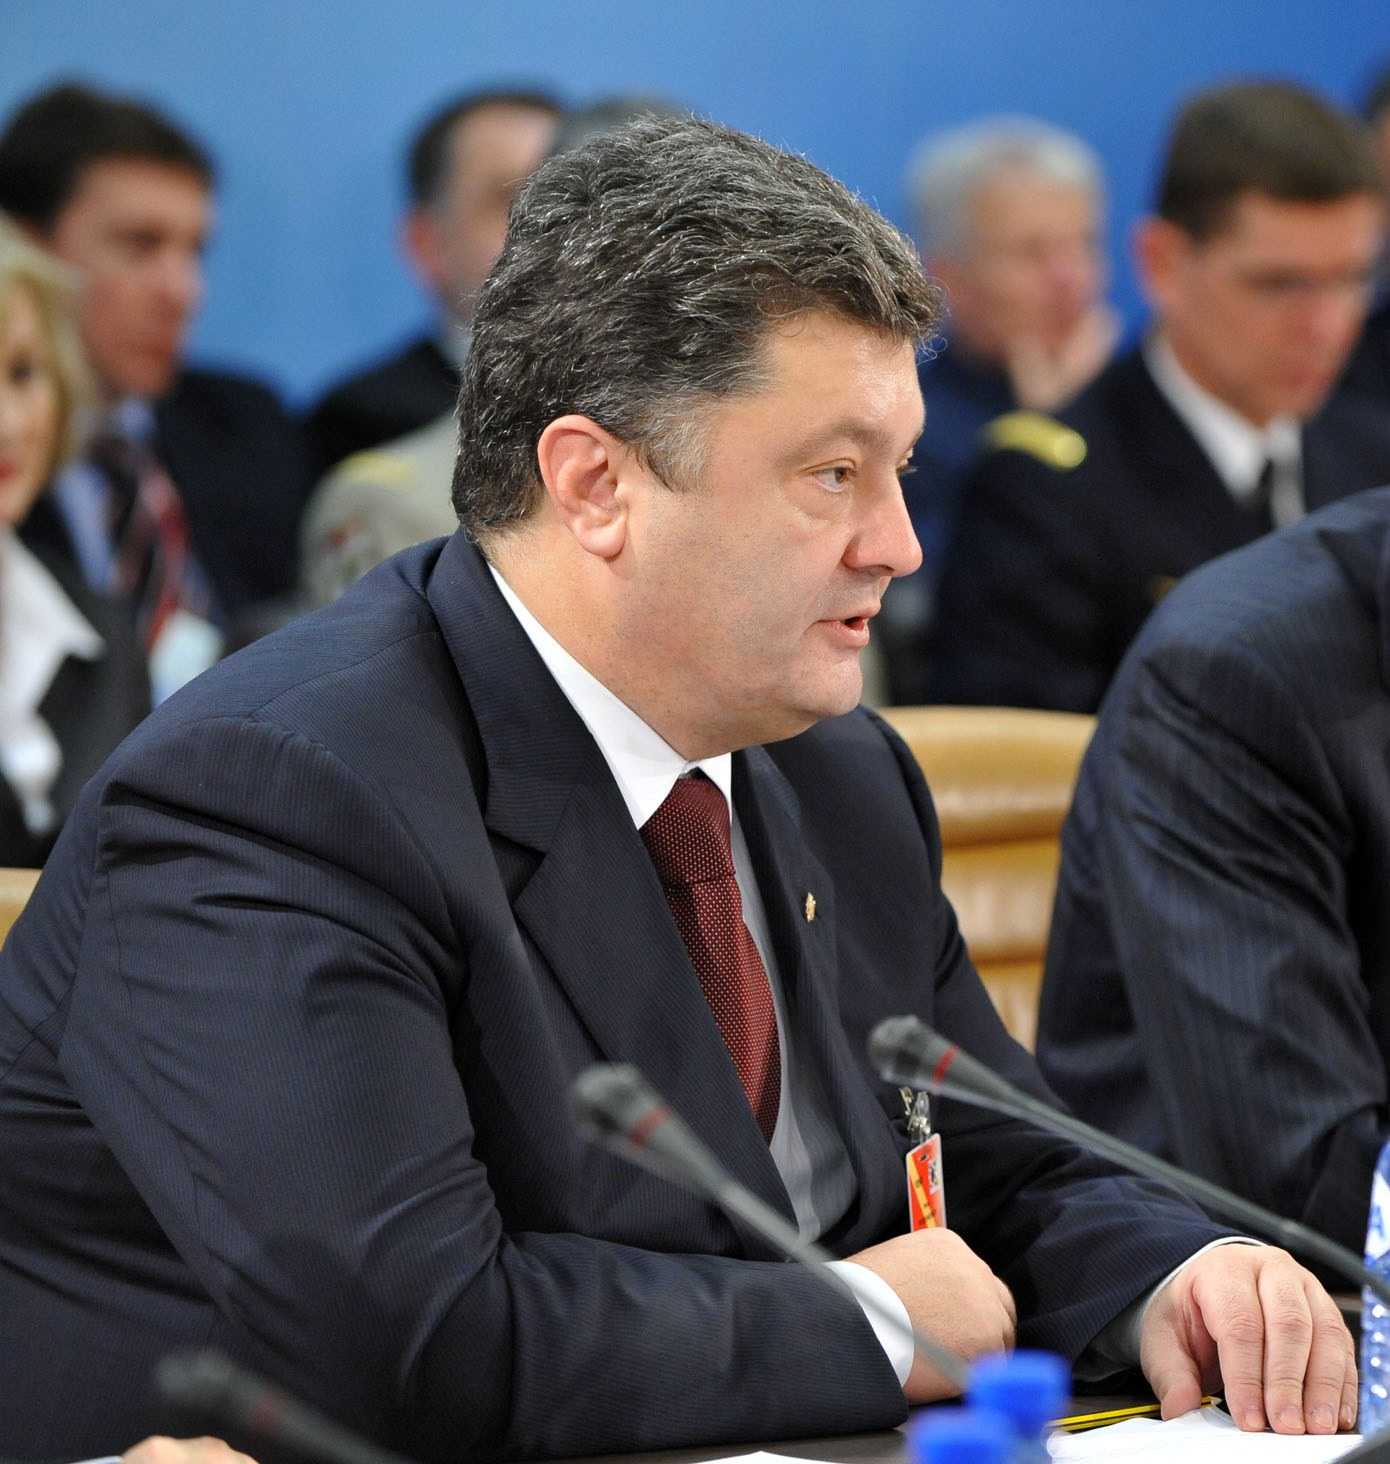 Poroshenko asks Israel's help in fight against Russia for Ukraine's future